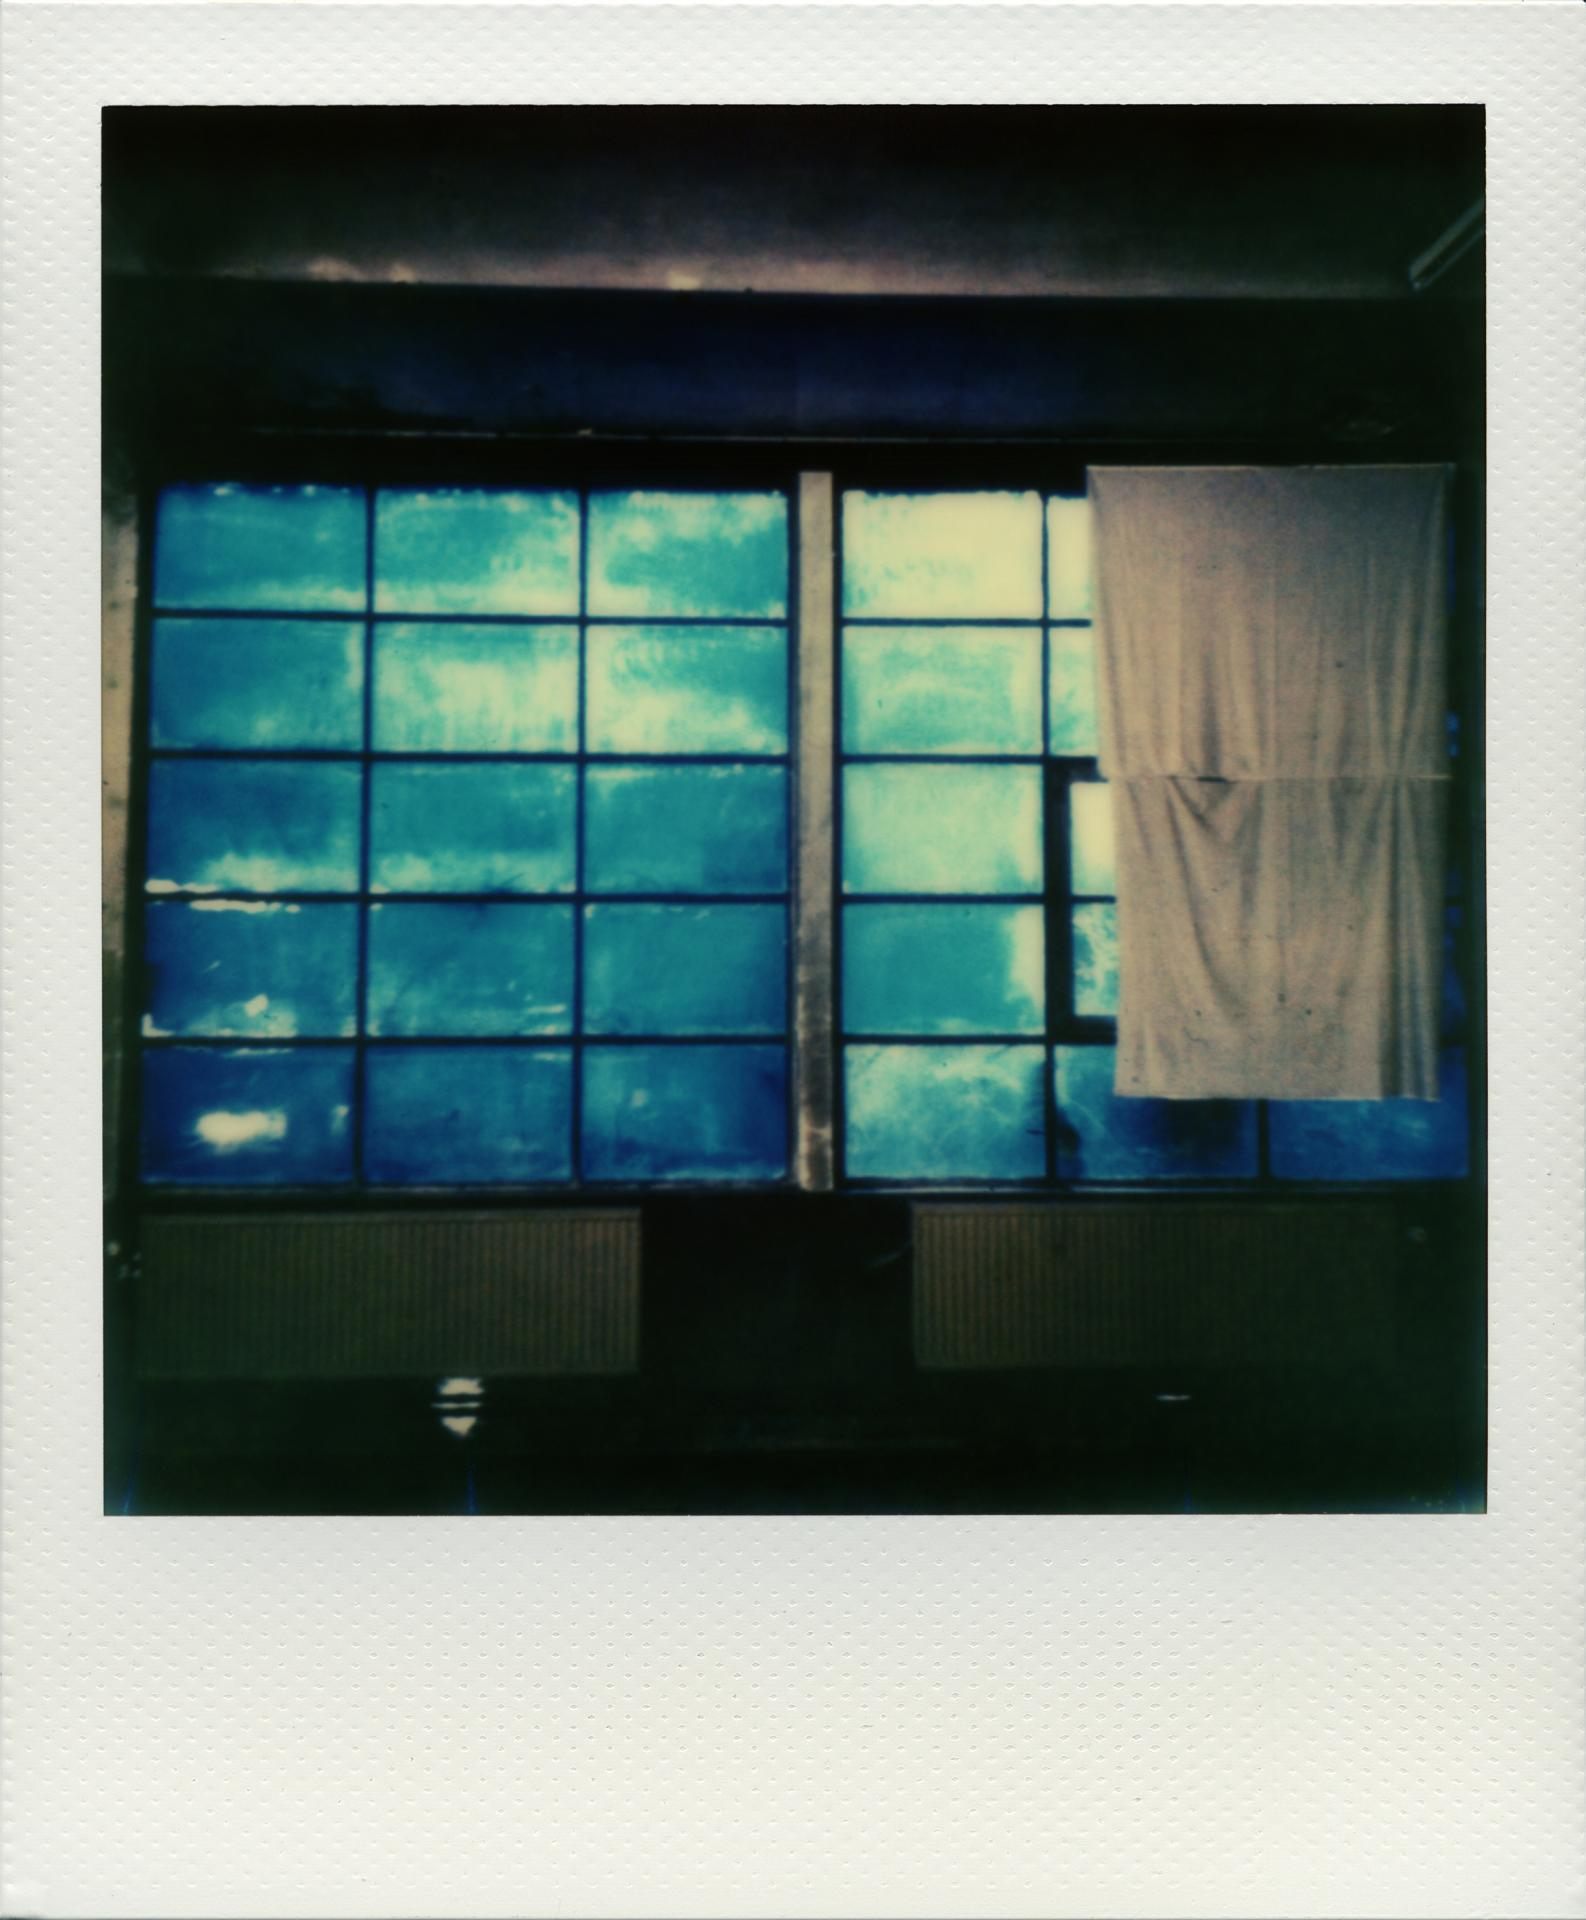 Pola windows 02